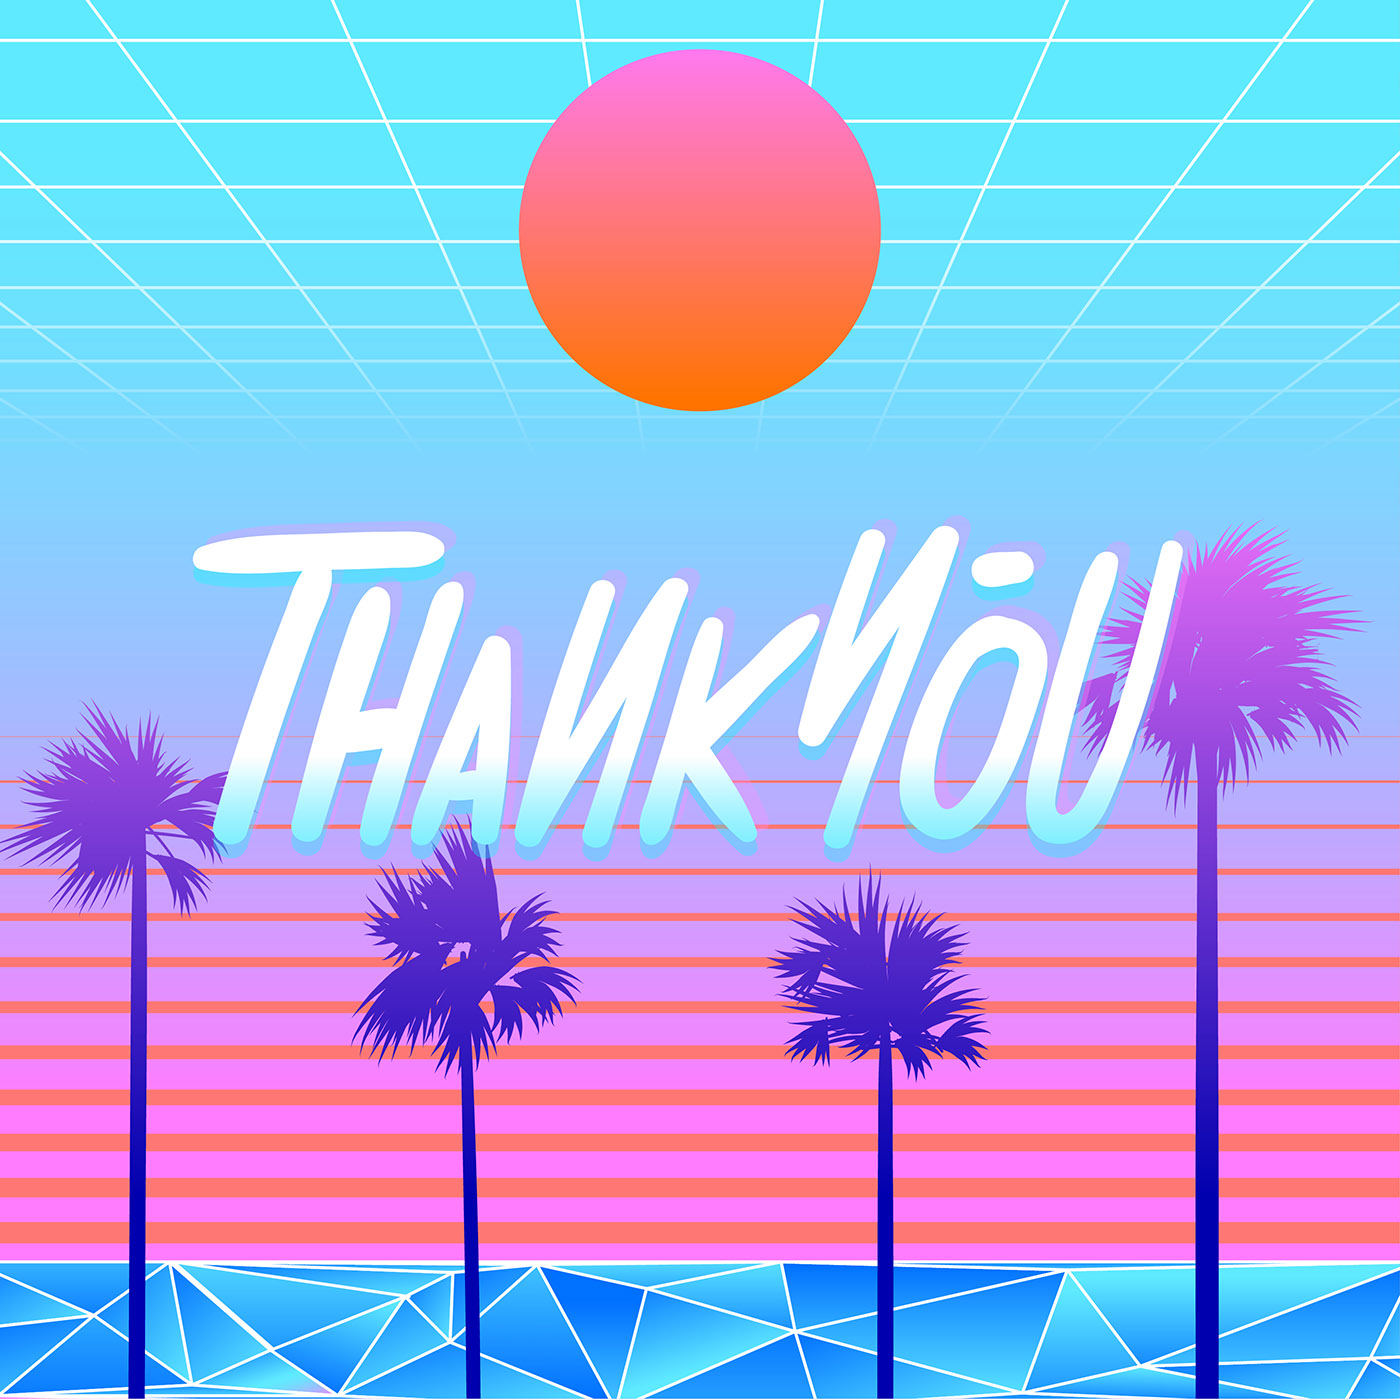 Fall Vibes Wallpaper Thank You Typography Beach Vaporwave Vector Download